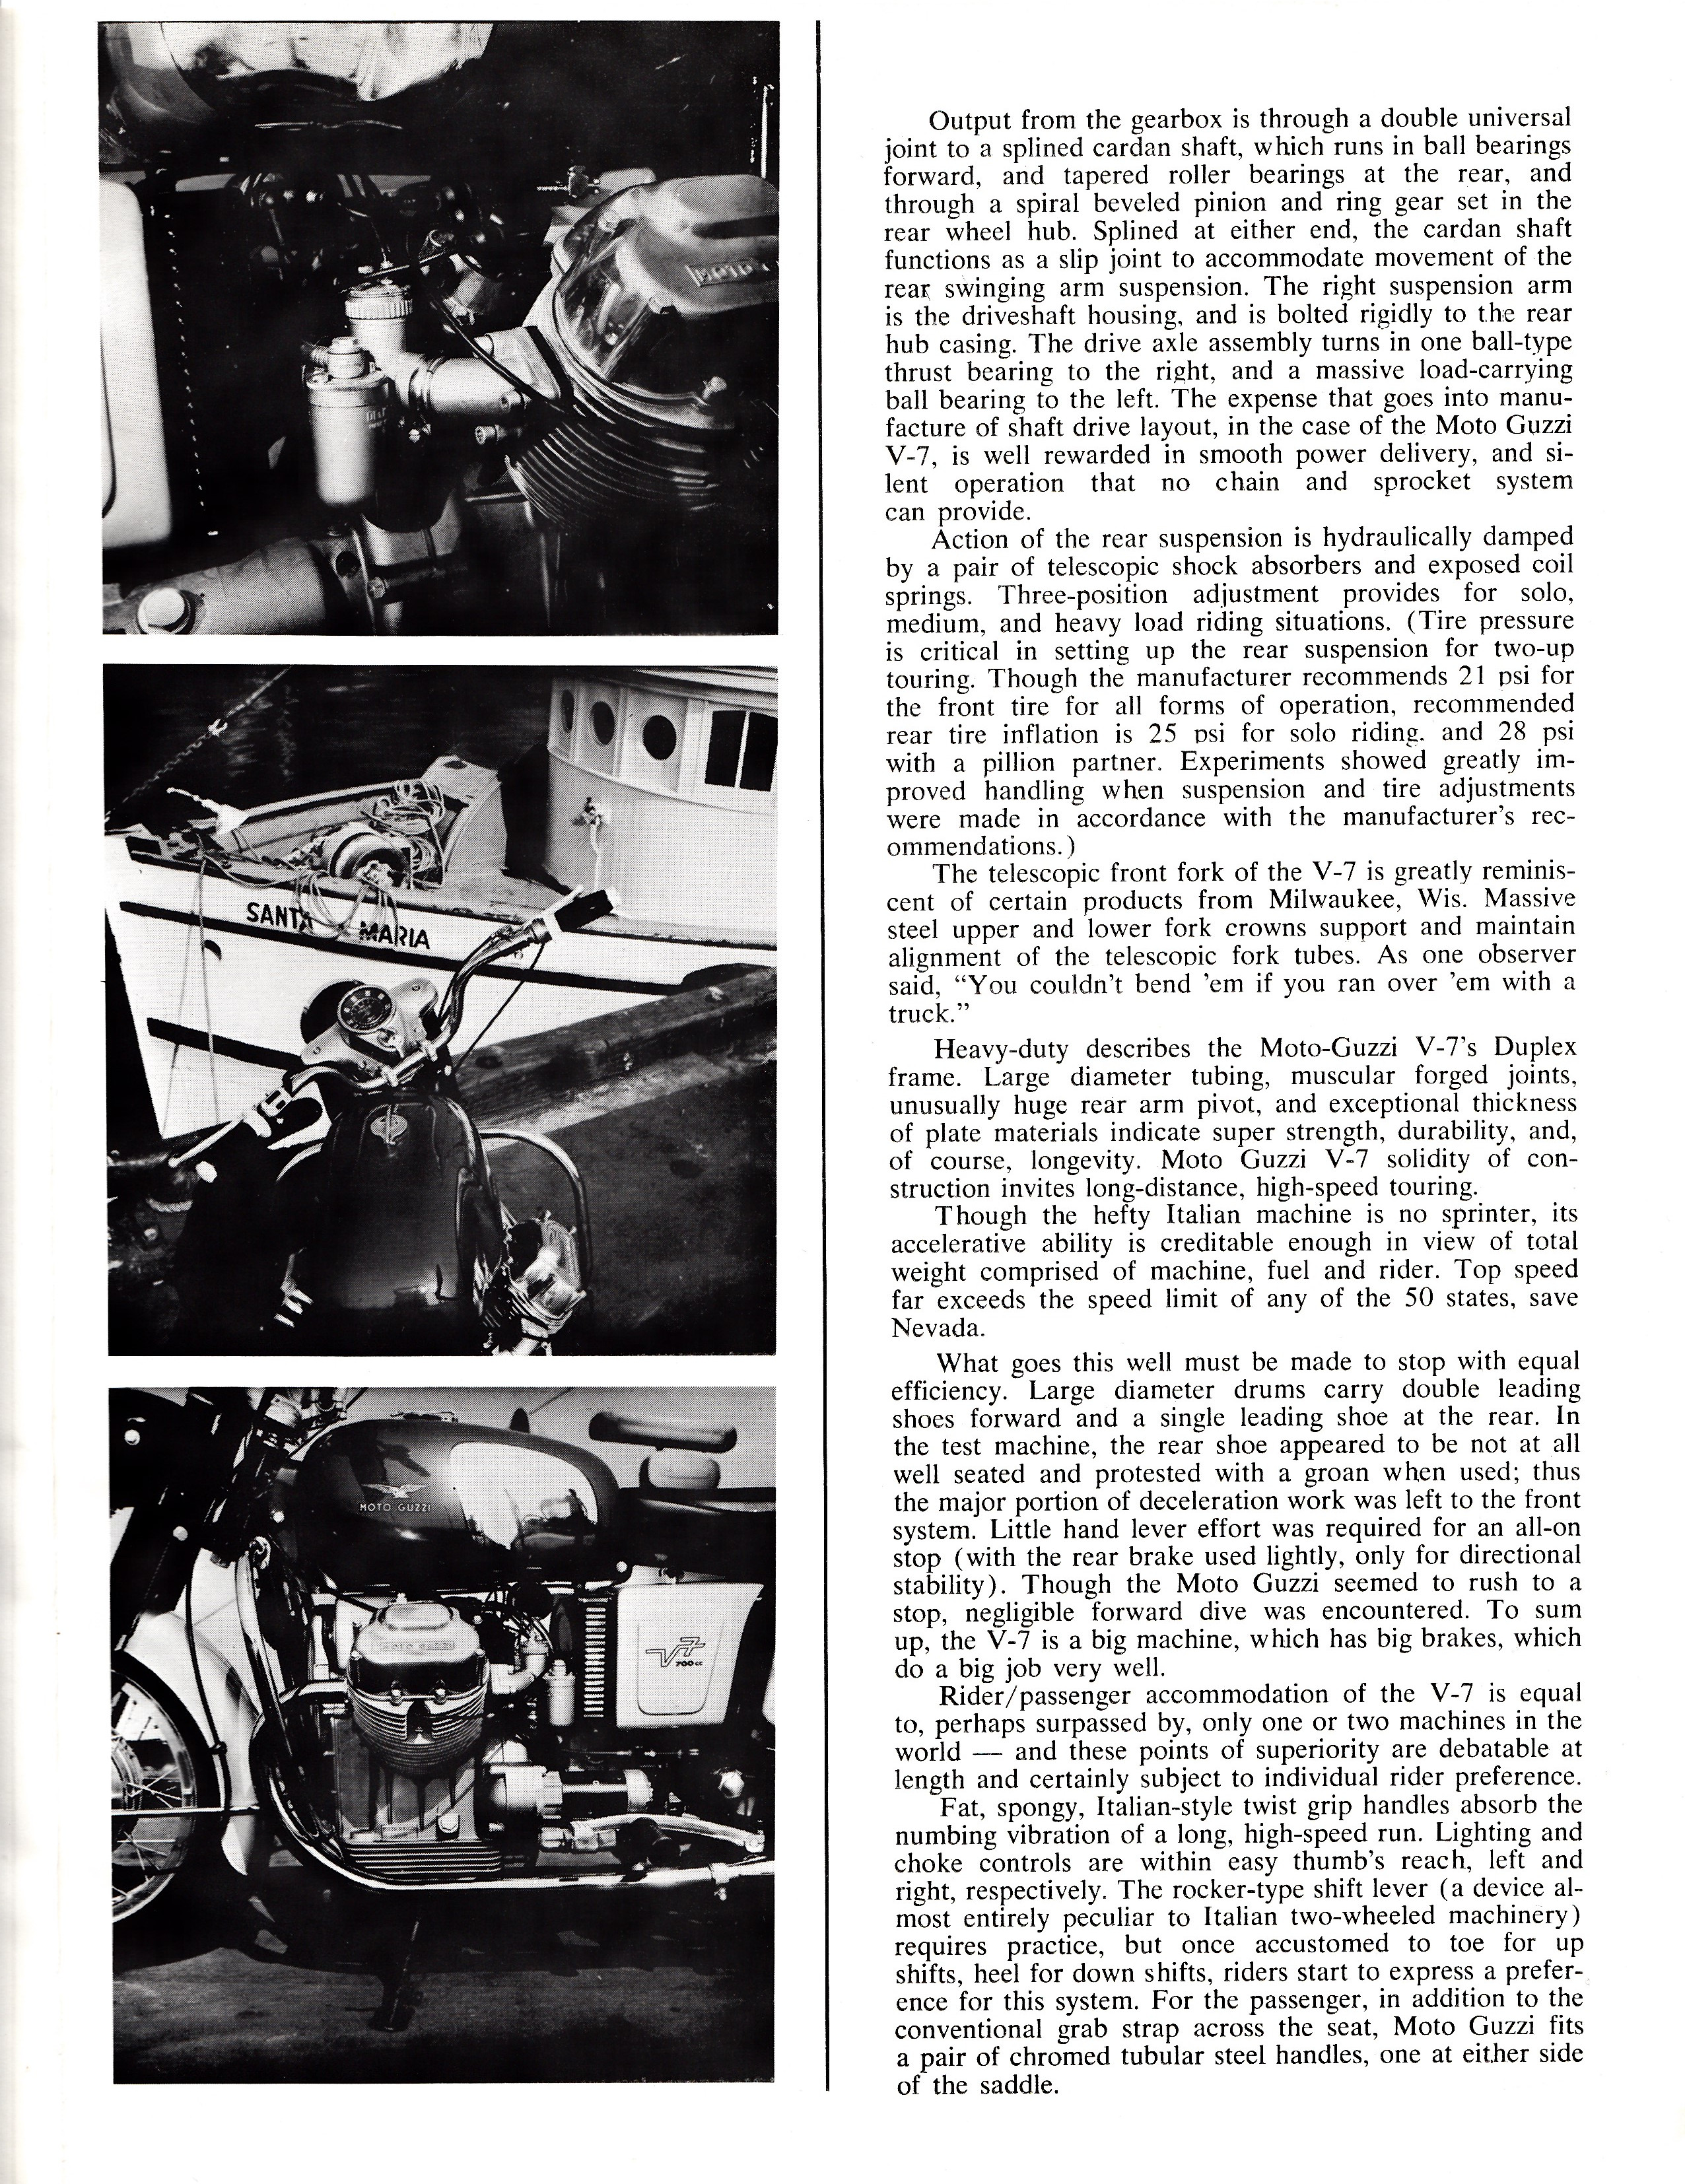 Moto Guzzi V700 factory brochure of magazine reviews, Page 3 of 8.